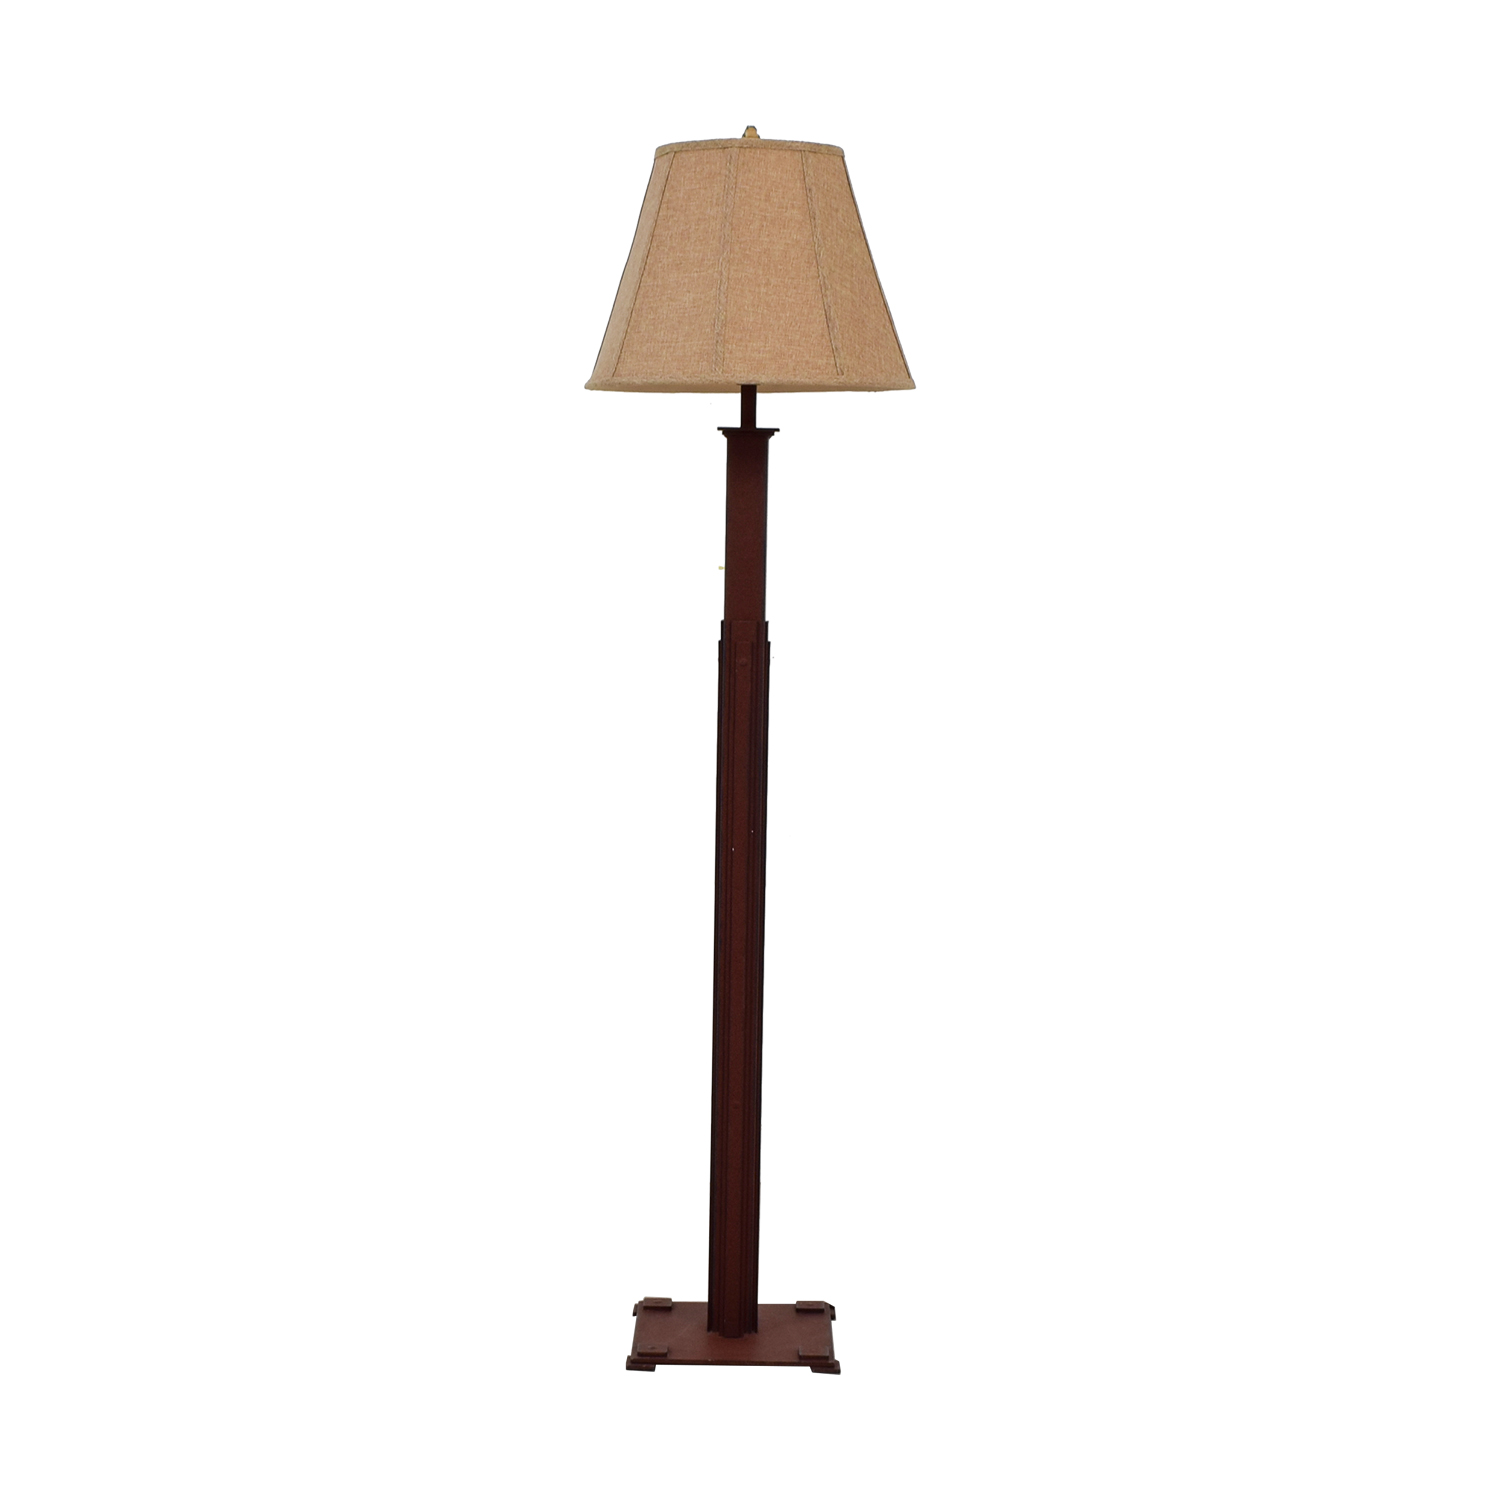 Distressed Burlap Shade Floor Lamp on sale